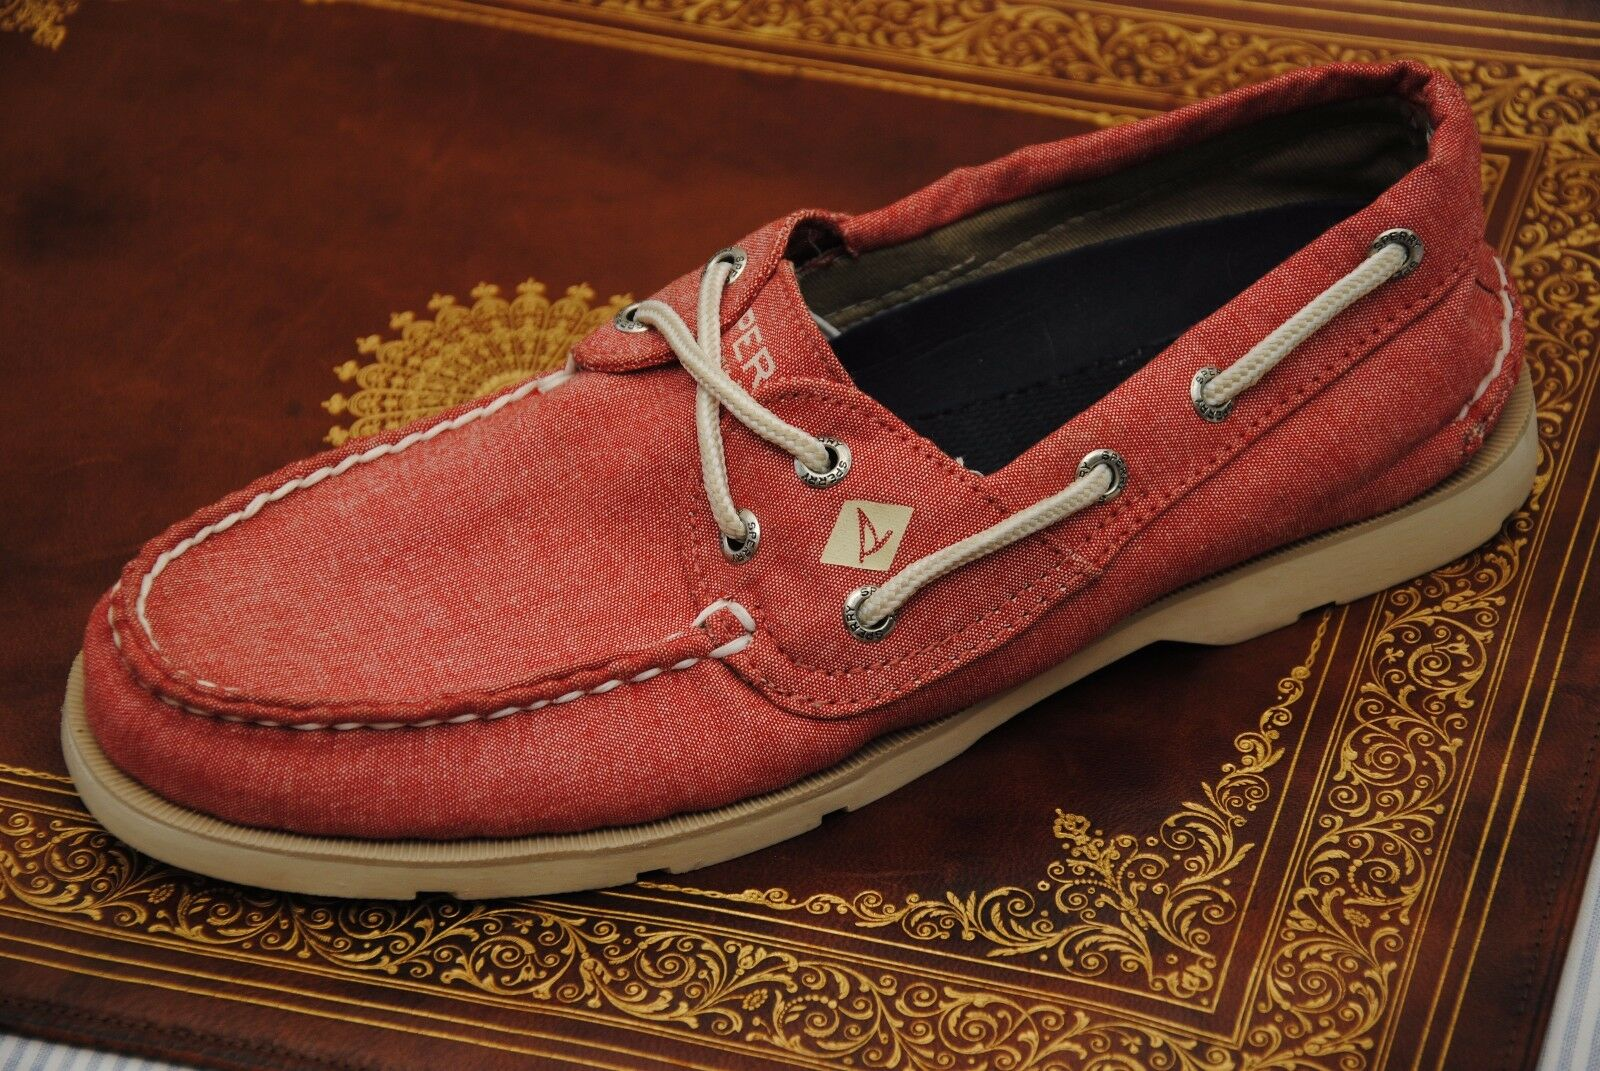 NEW MEN'S SPERRY TOP SIDER SHOES SZ 7.5 RED CANVAS BOAT DECK